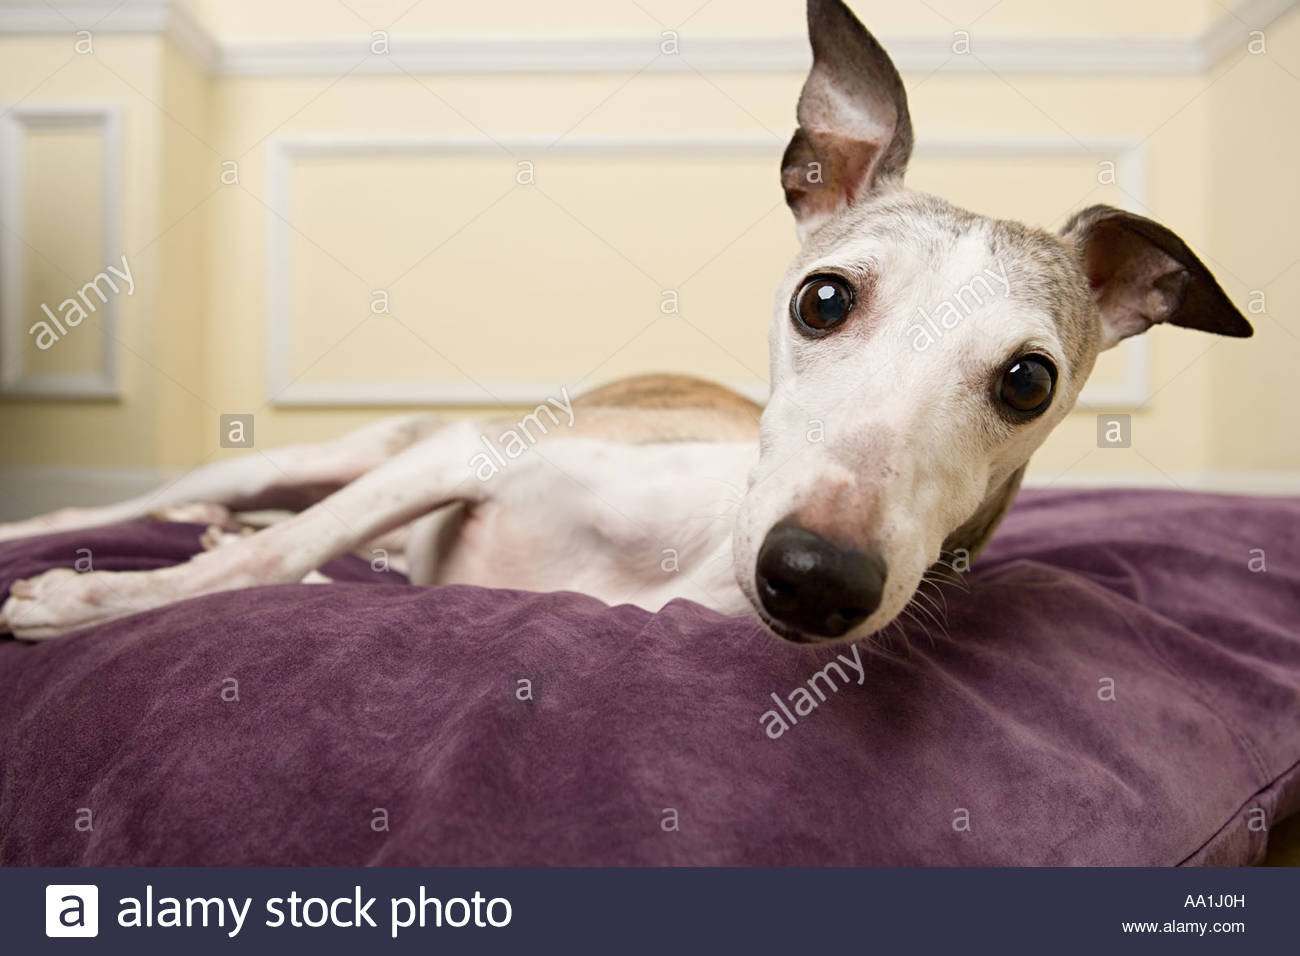 Whippet on a cushion - Stock Image